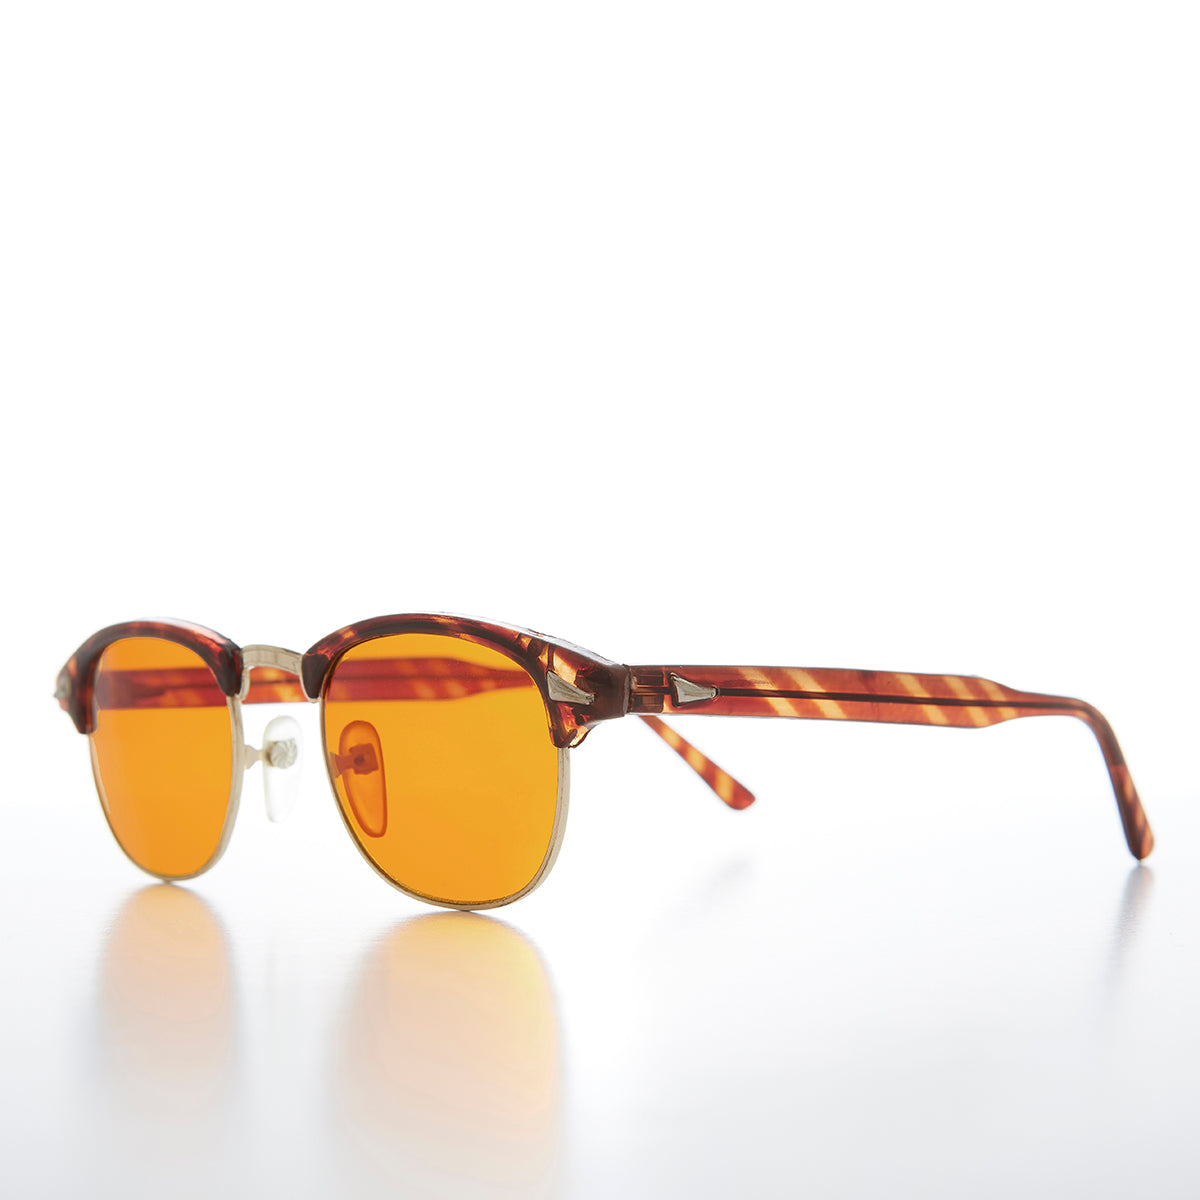 Half Frame Vintage Sunglass with Blue Blocker Amber Tinted Lens